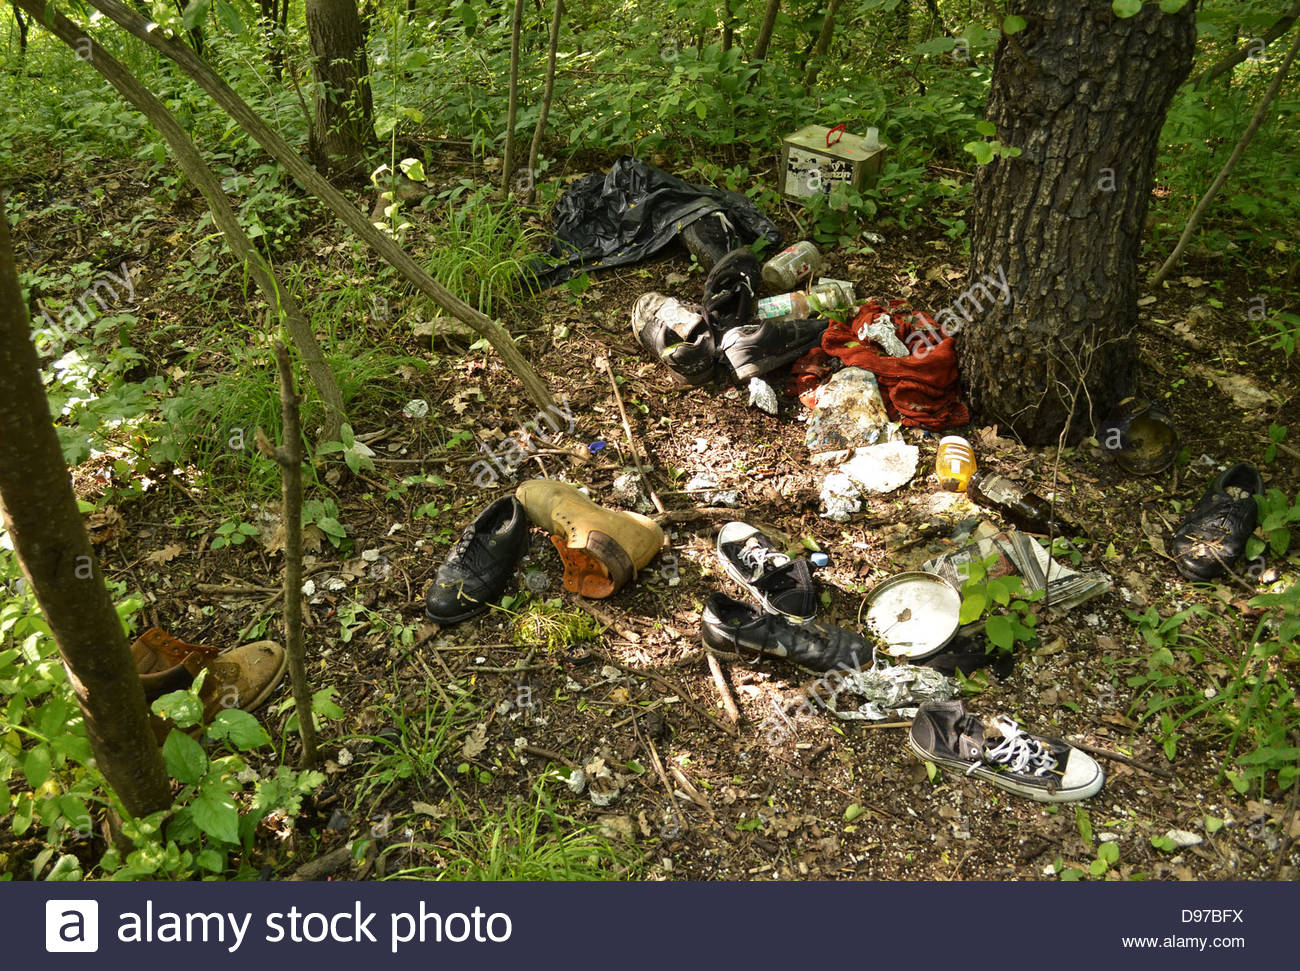 Garbage dumped in the forest - Stock Image